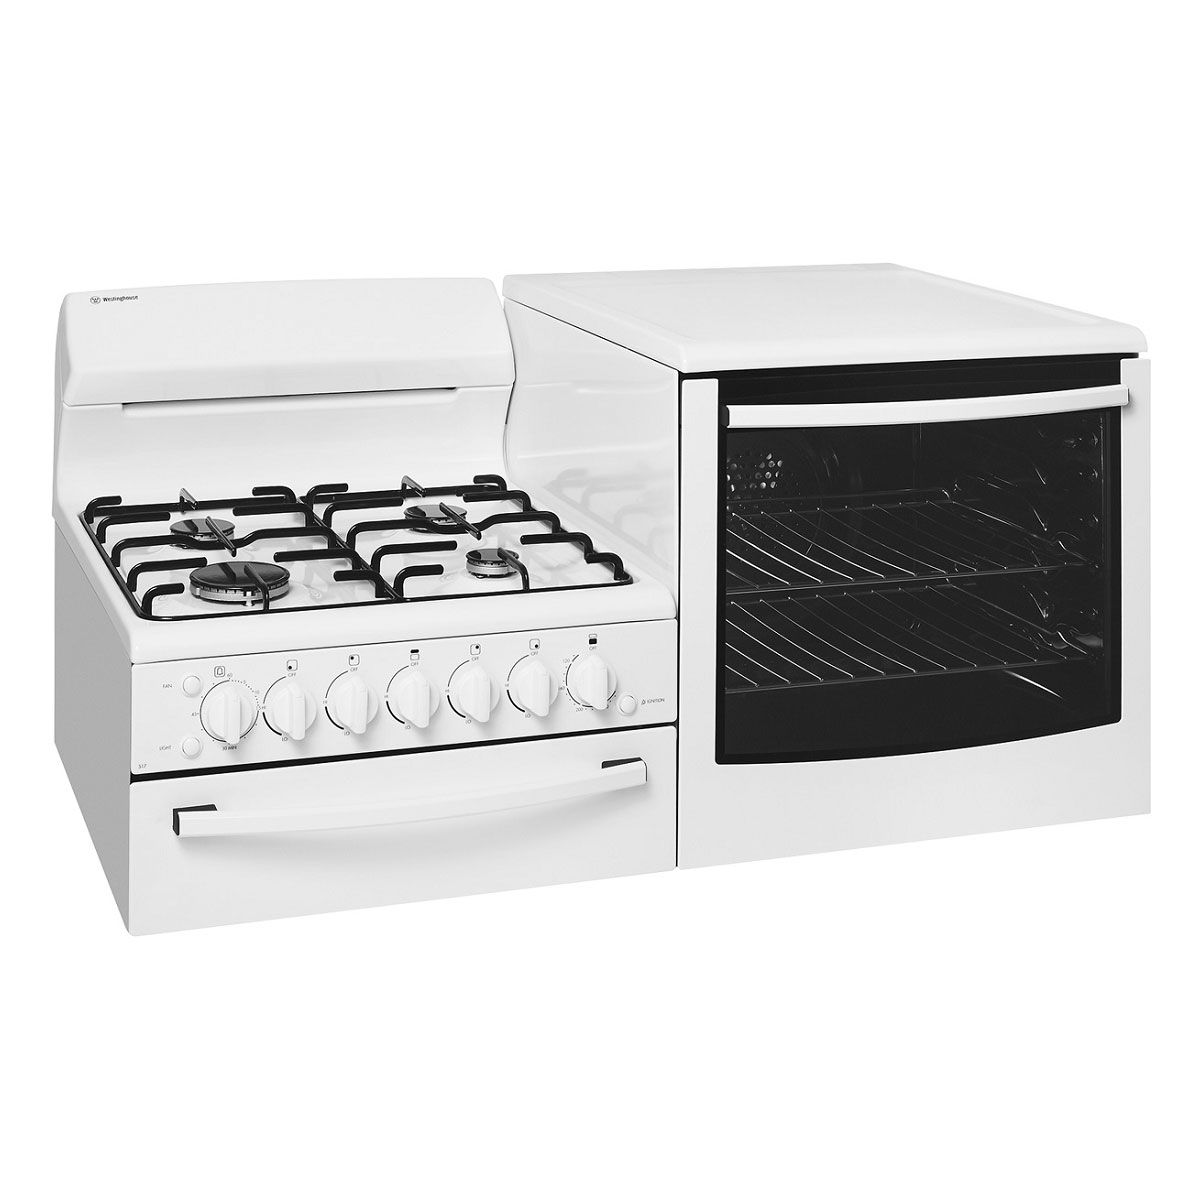 Westinghouse WDG103WA-R Elevated Gas Oven